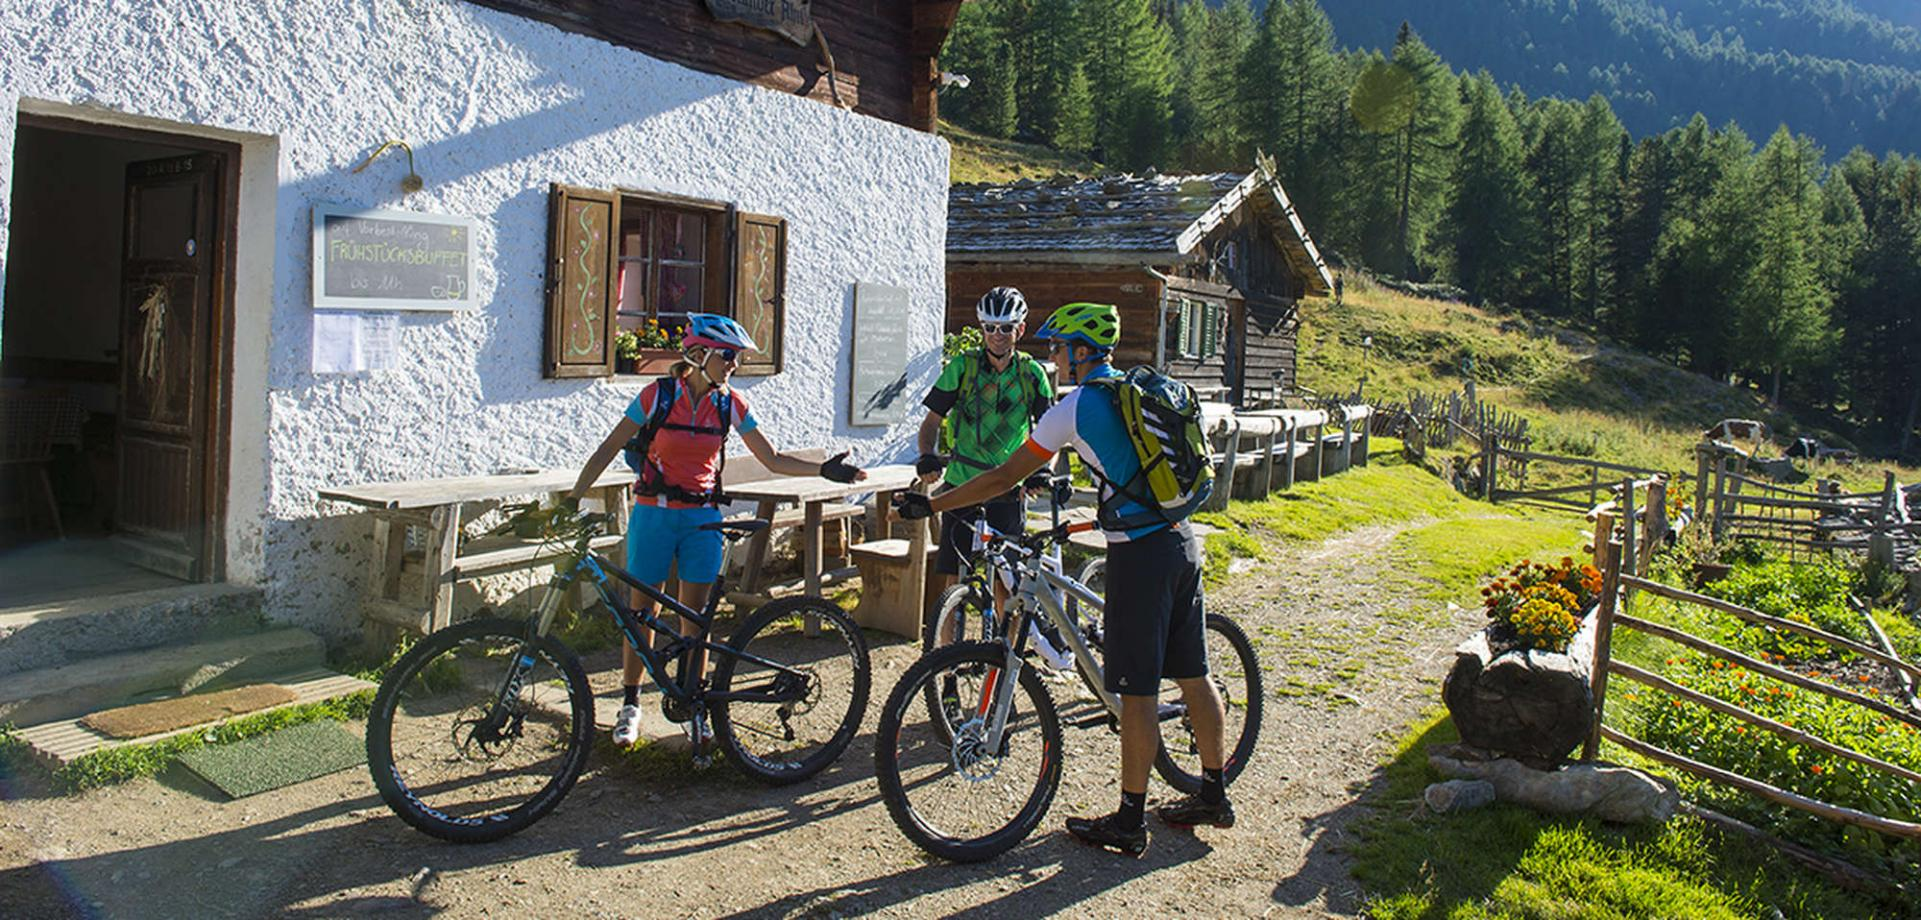 Ferie in mountainbike con la Oetzi Bike Academy a Naturno in Val Venosta